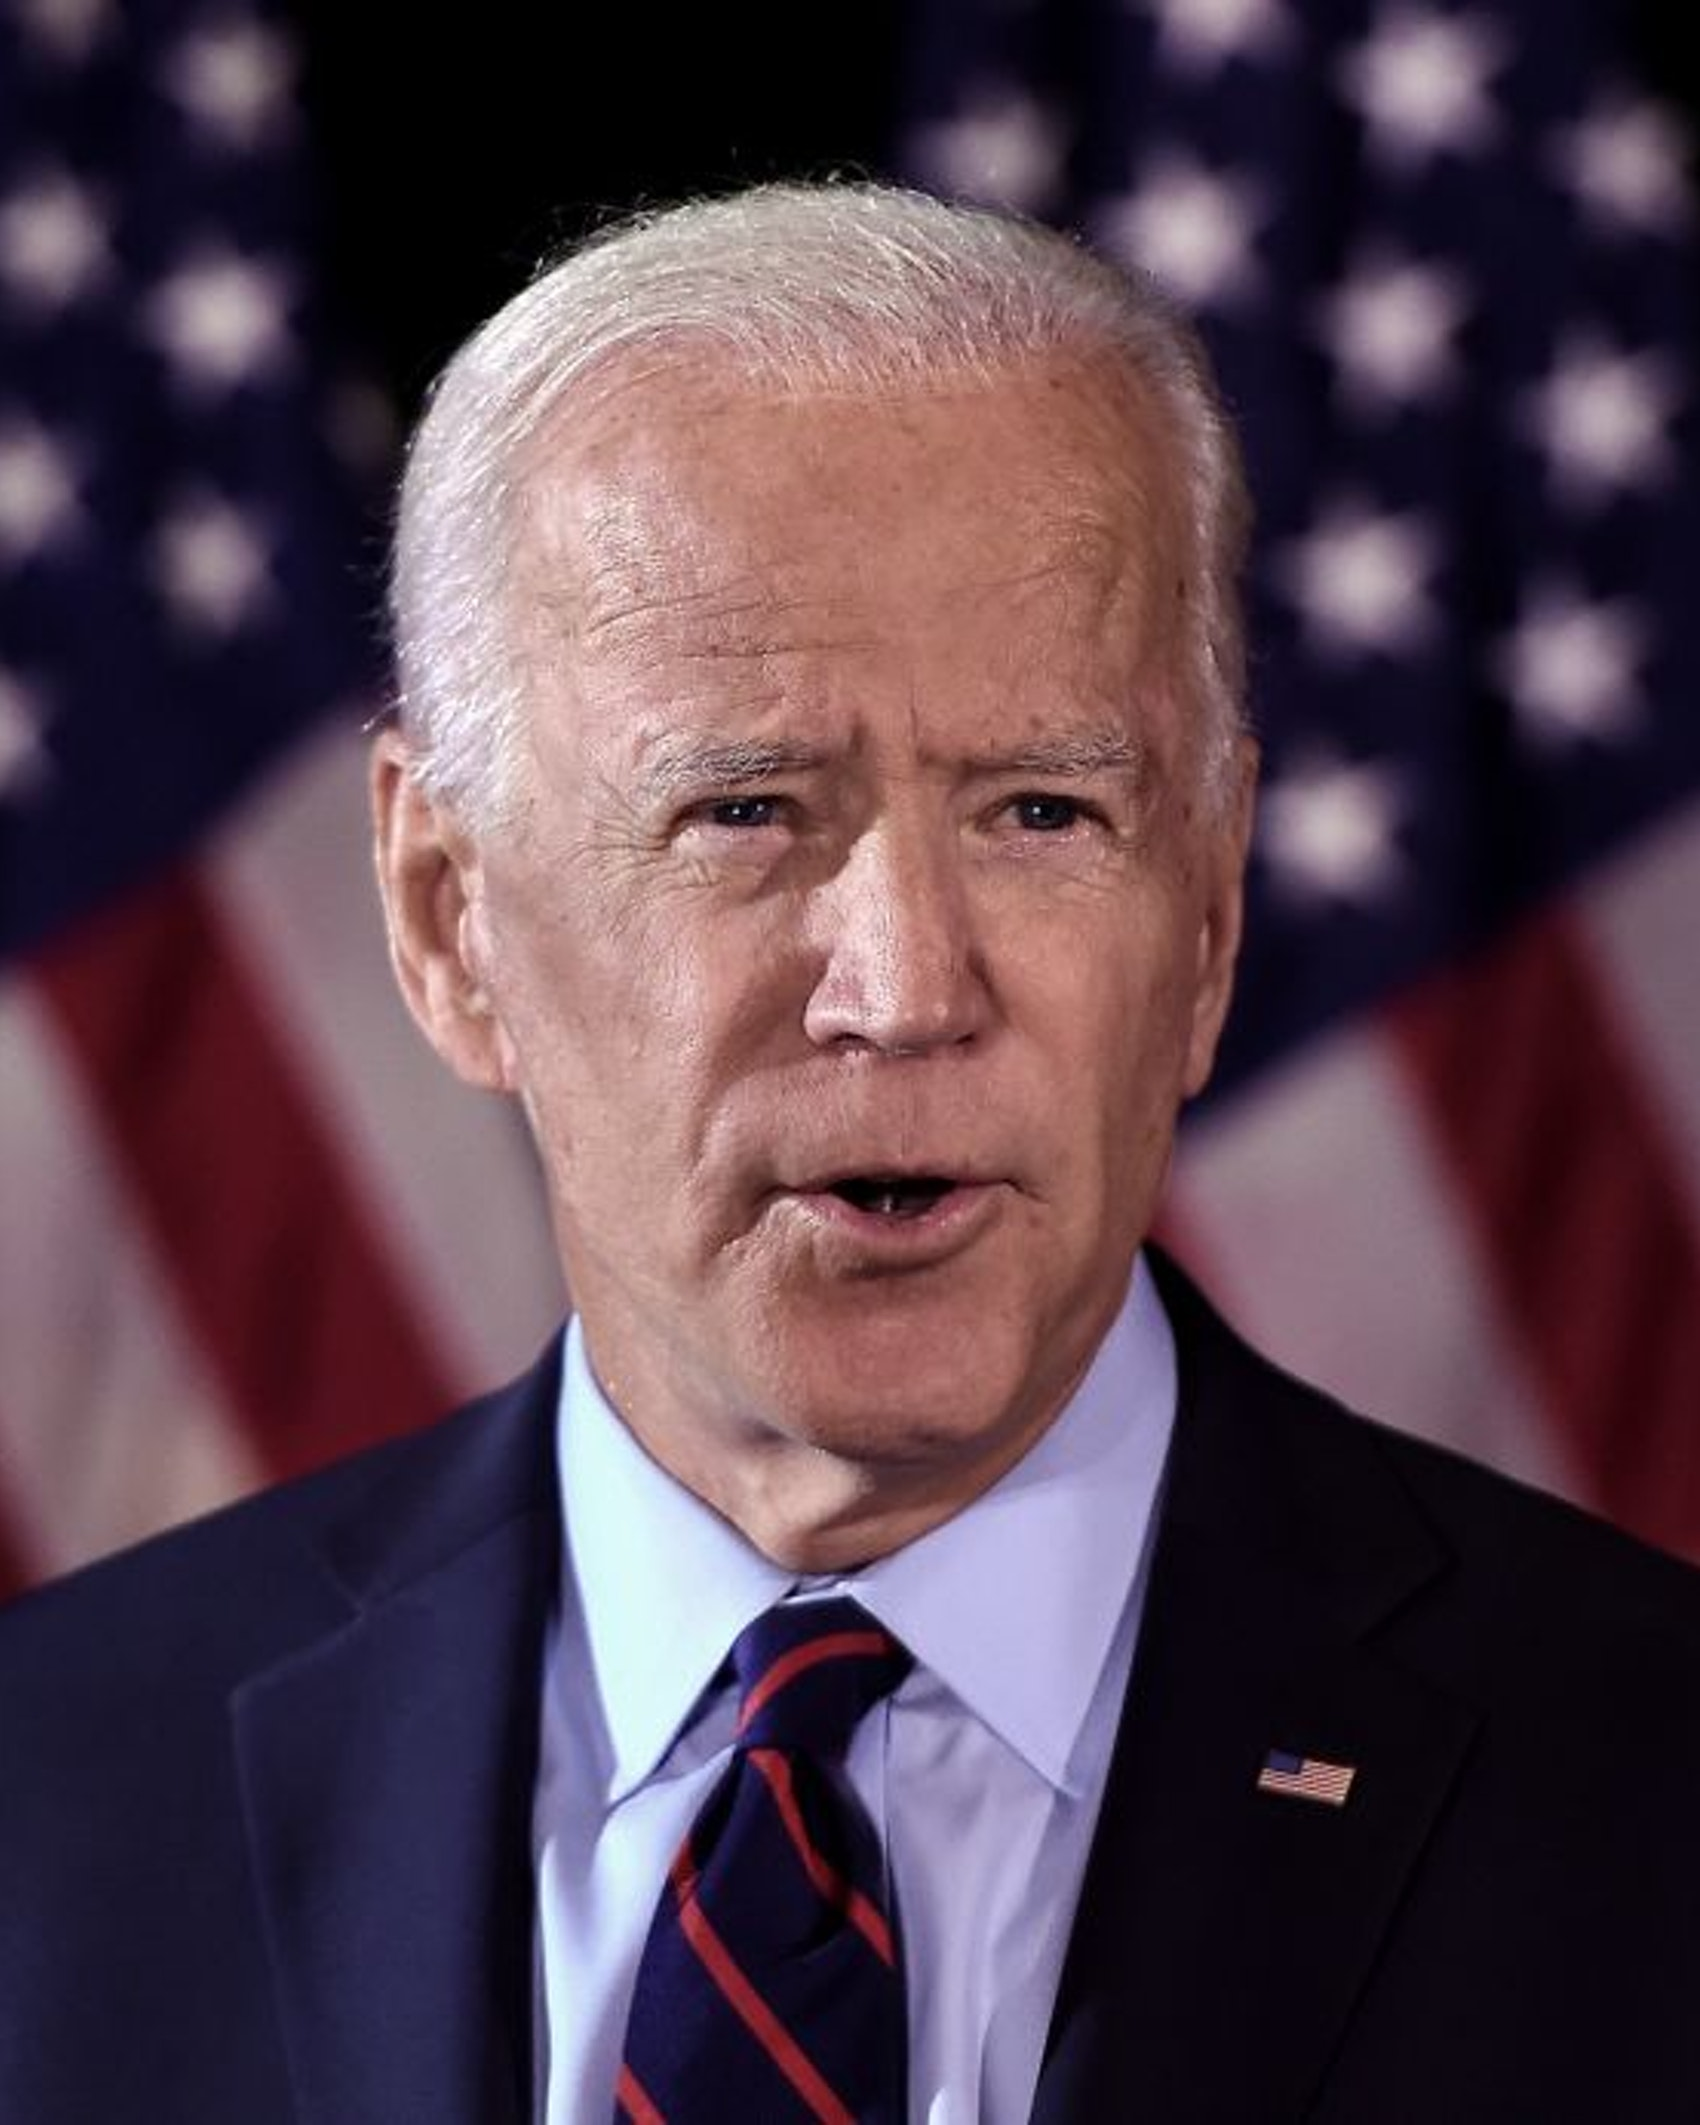 Democratic presidential hopeful Joe Biden makes a statement on Ukraine during a press conference at the Hotel Du Pont on September 24, 2019, in Wilmington, Delaware. (Photo by Olivier Douliery / AFP) (Photo by OLIVIER DOULIERY/AFP via Getty Images)